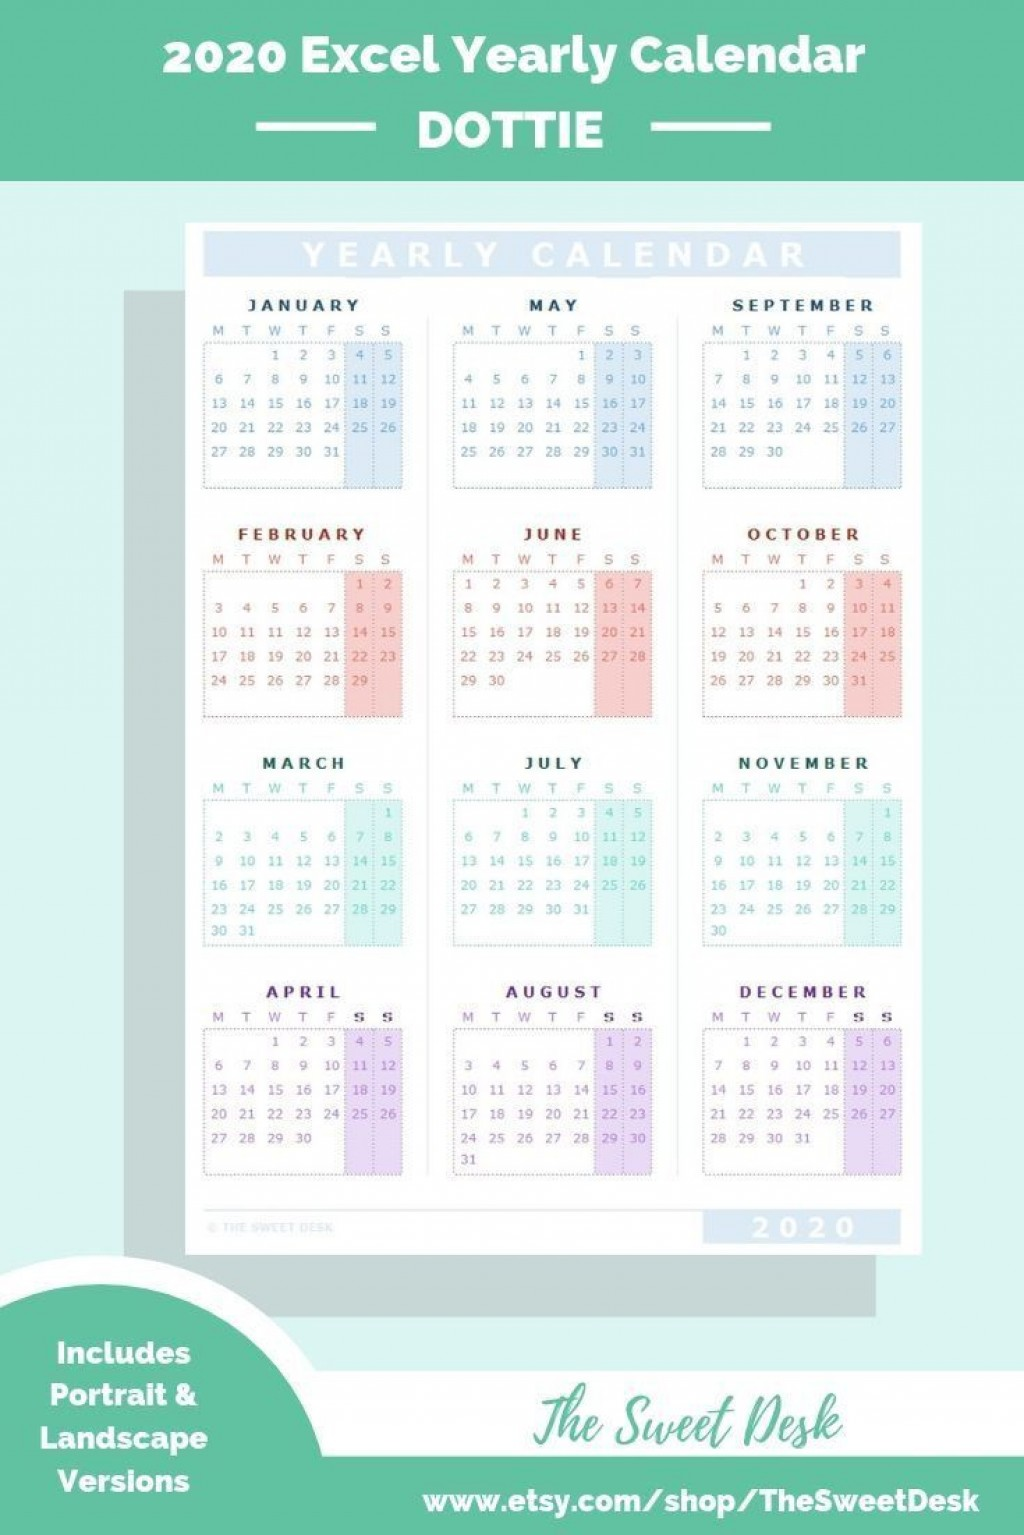 000 Awesome Calendar 2020 Template Excel Picture  Monthly Free Uk In Format DownloadLarge